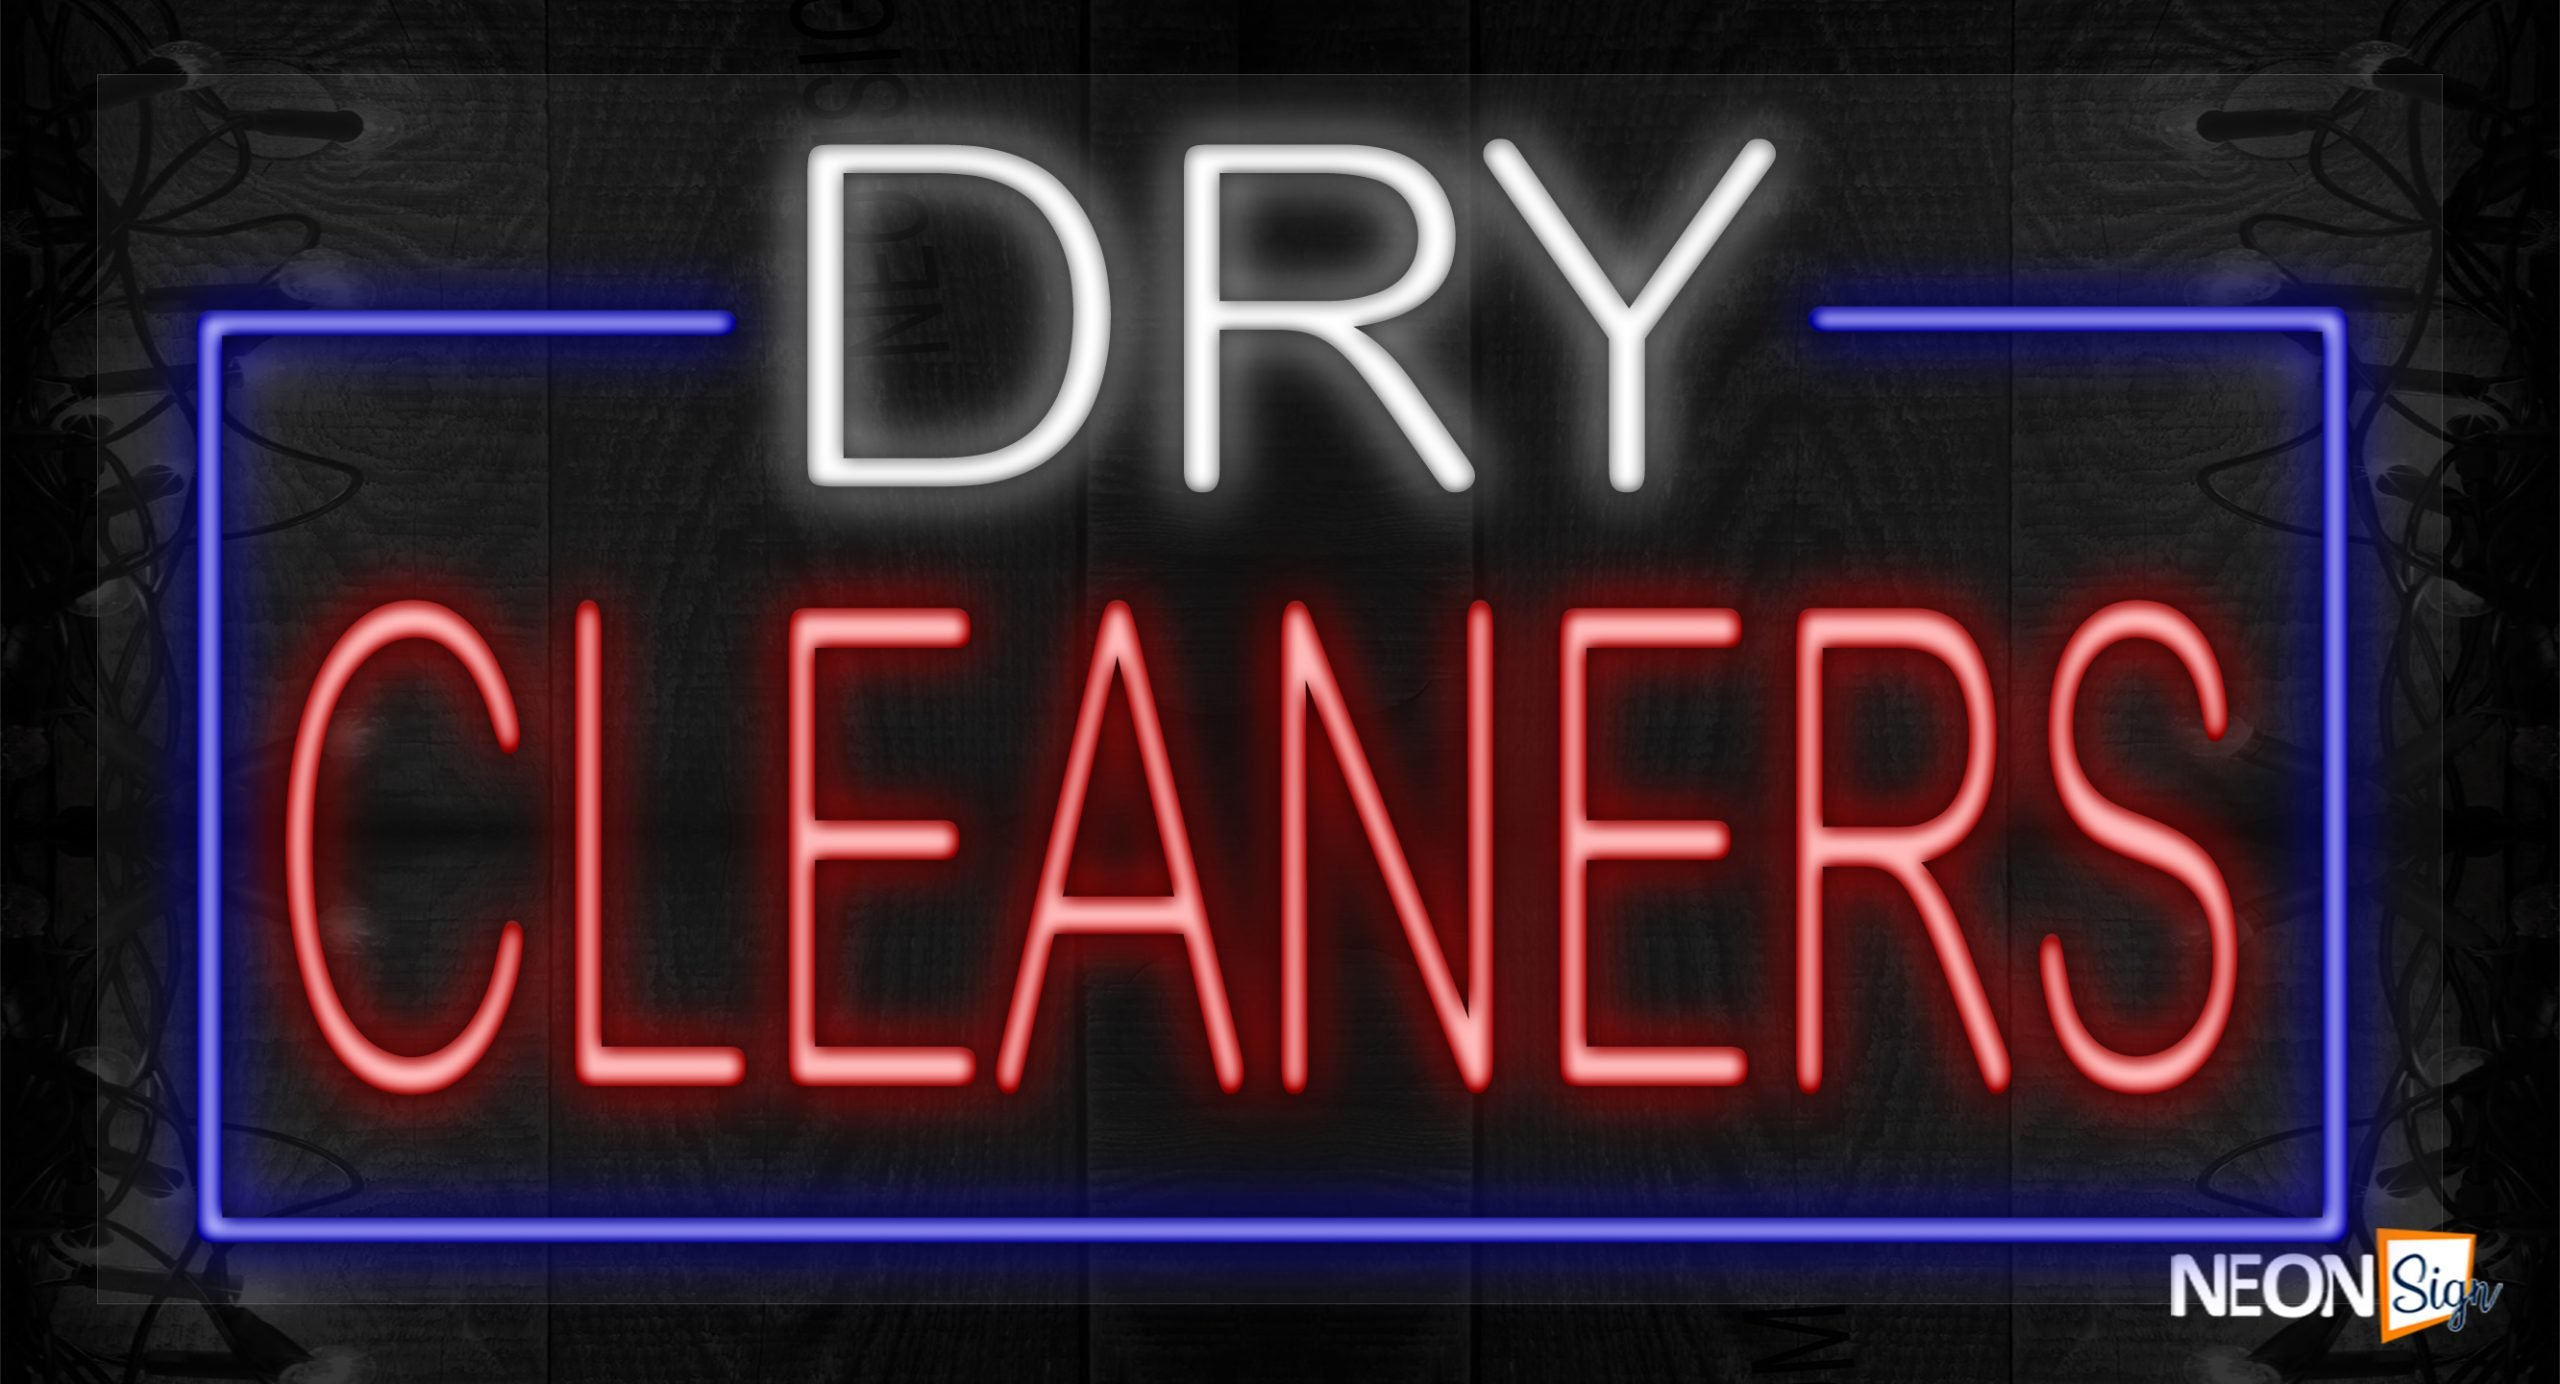 Image of Dry Cleanerss in white and red with blue border LED Flex